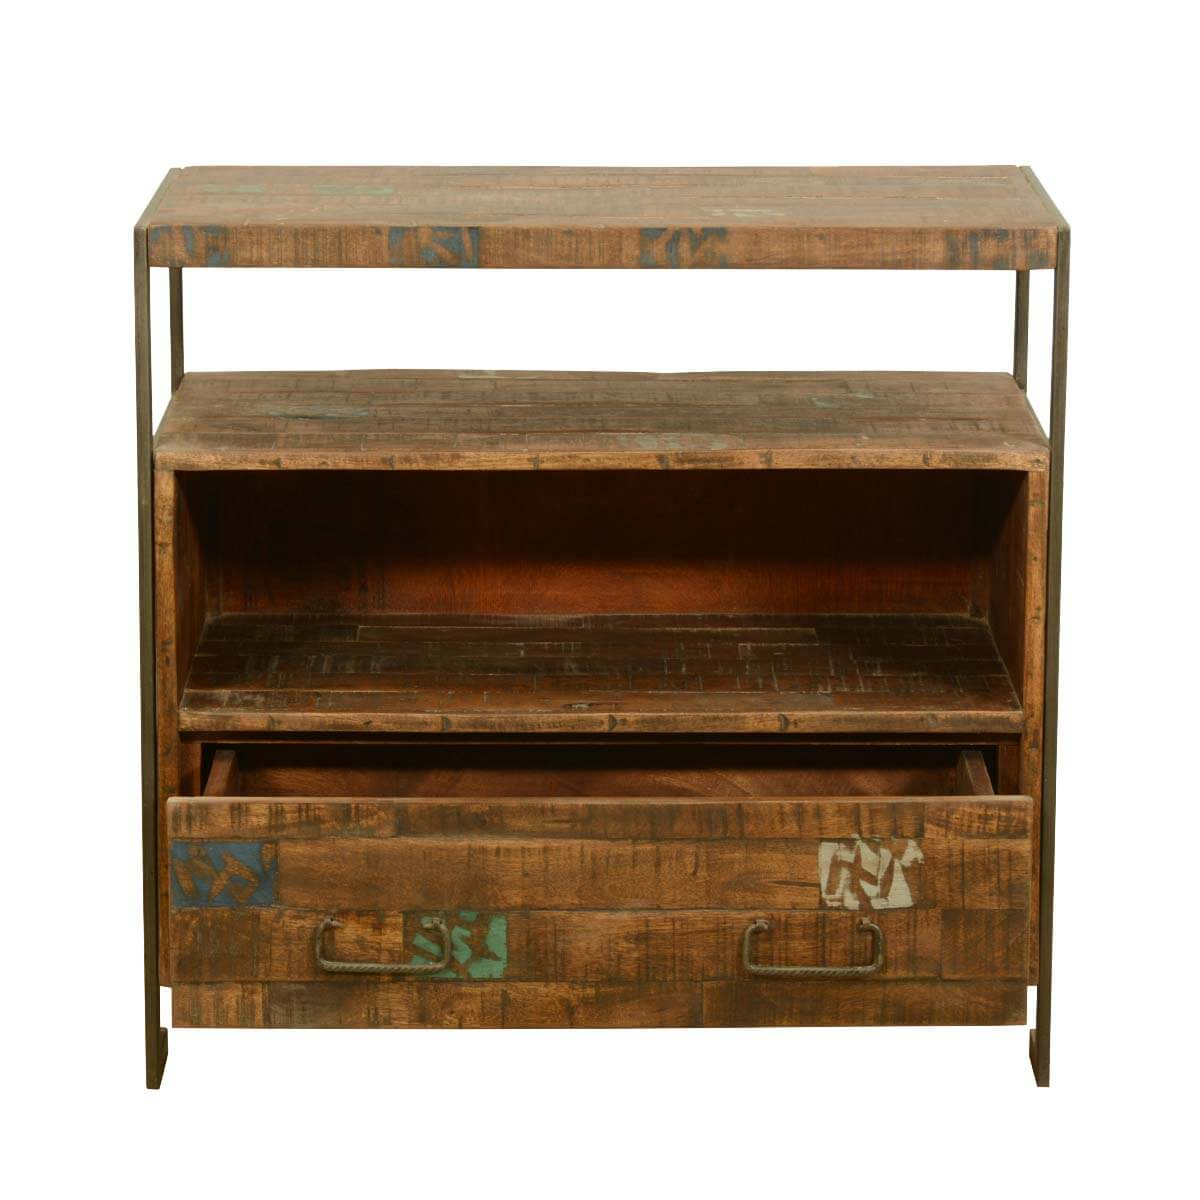 Drakensberg Reclaimed Wood Iron Rustic Media Console Tv